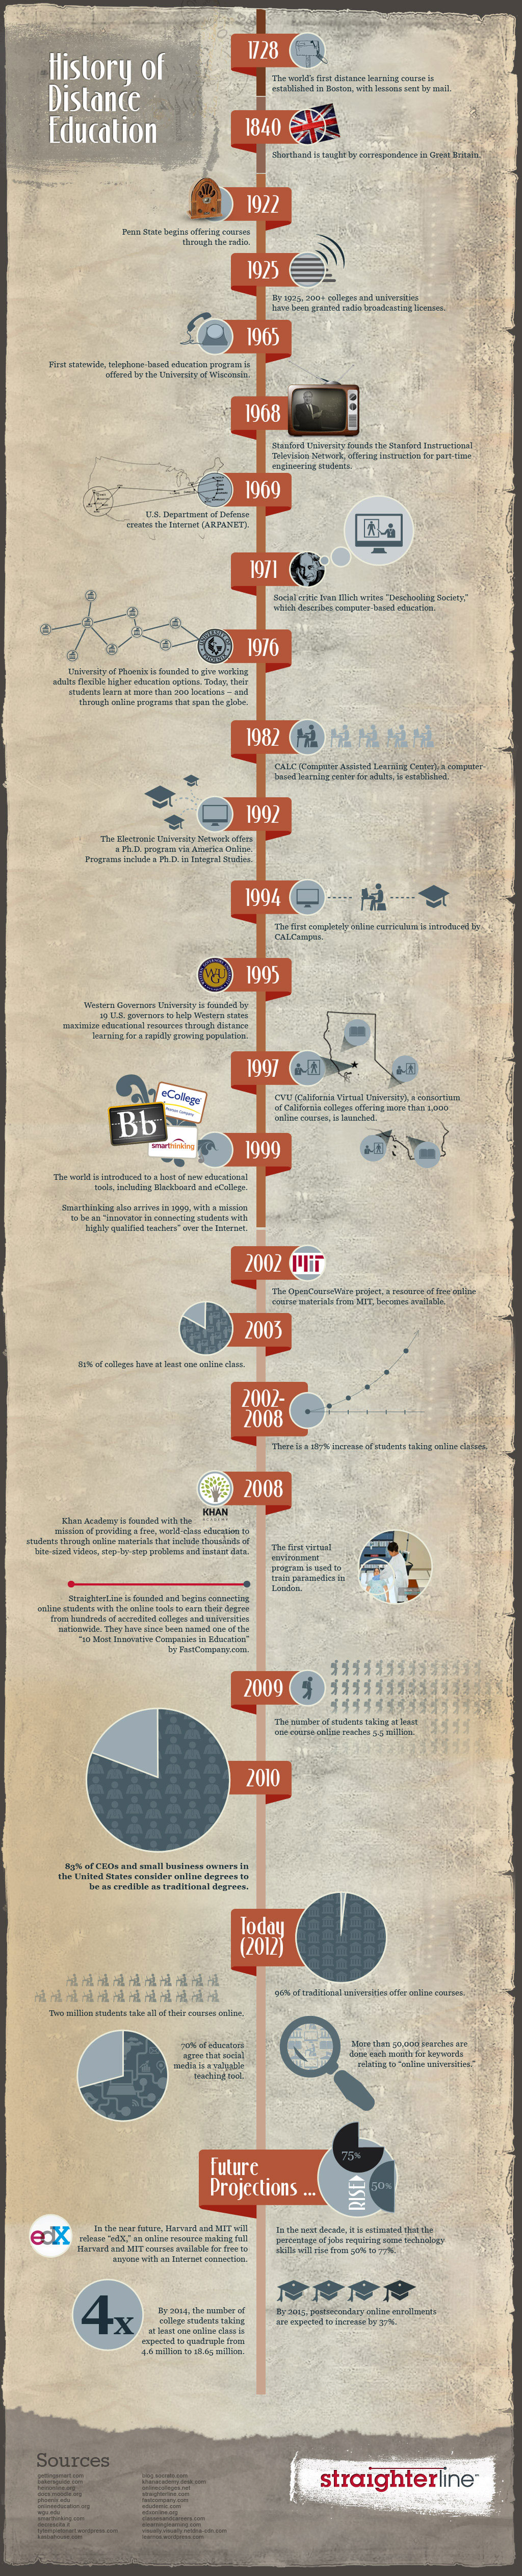 straighterline infographic history of distance learning